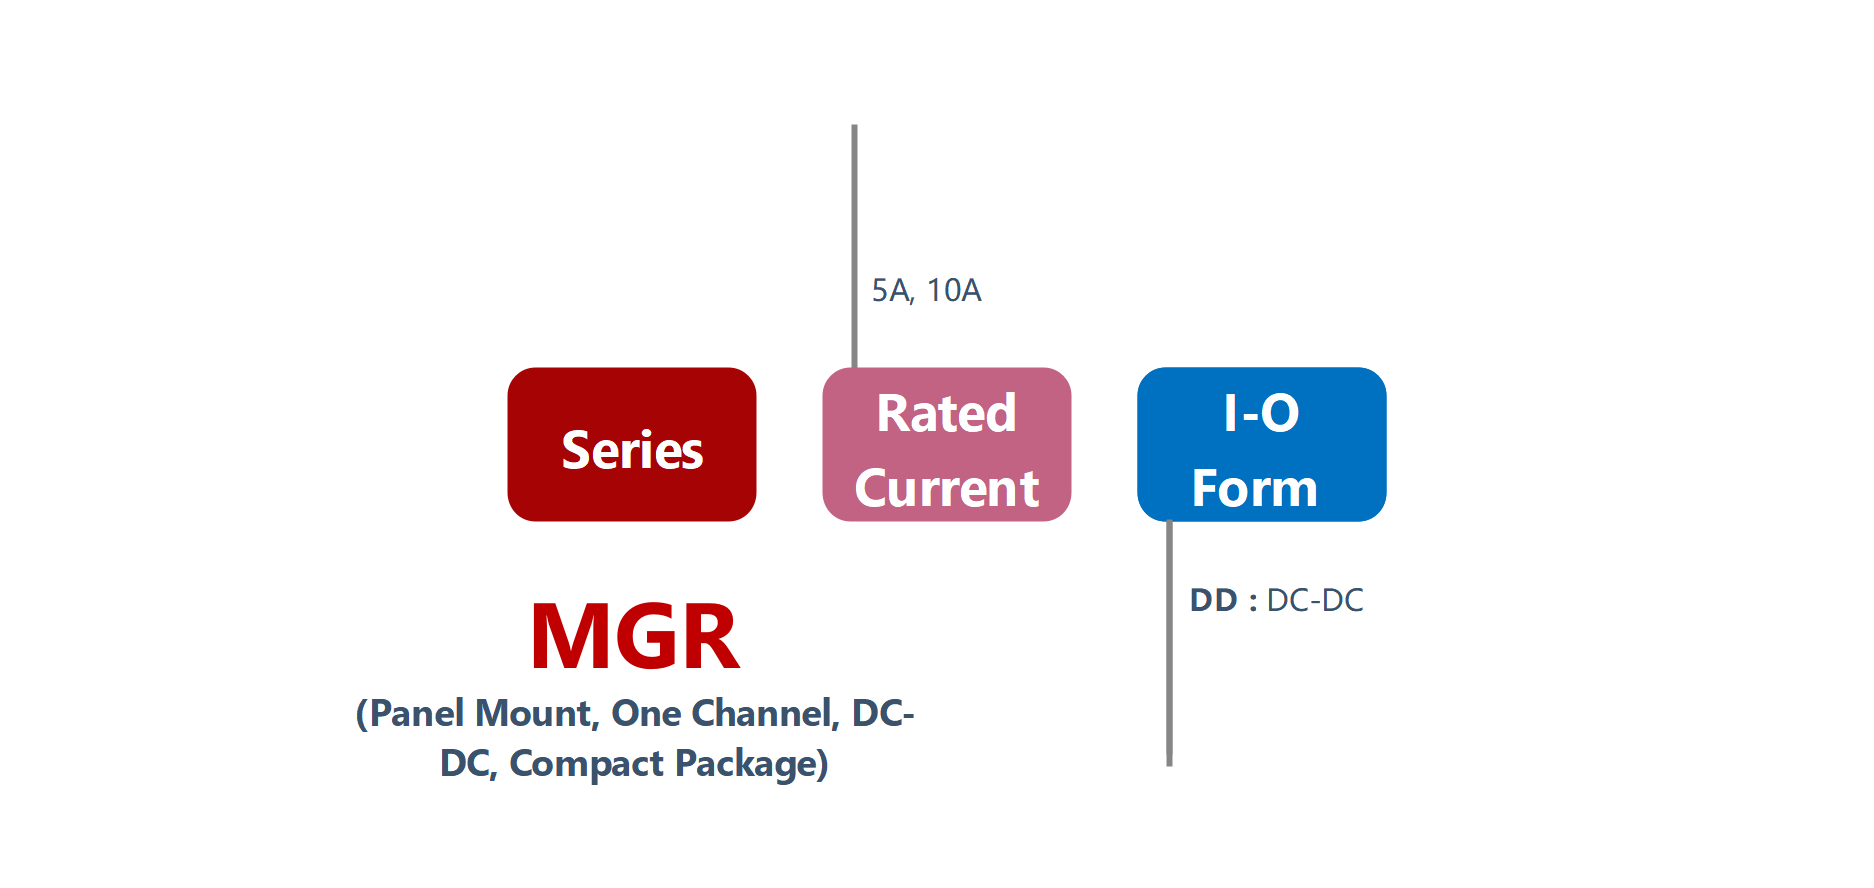 How to order MGR-DD Series Panel Mount Solid State Relay